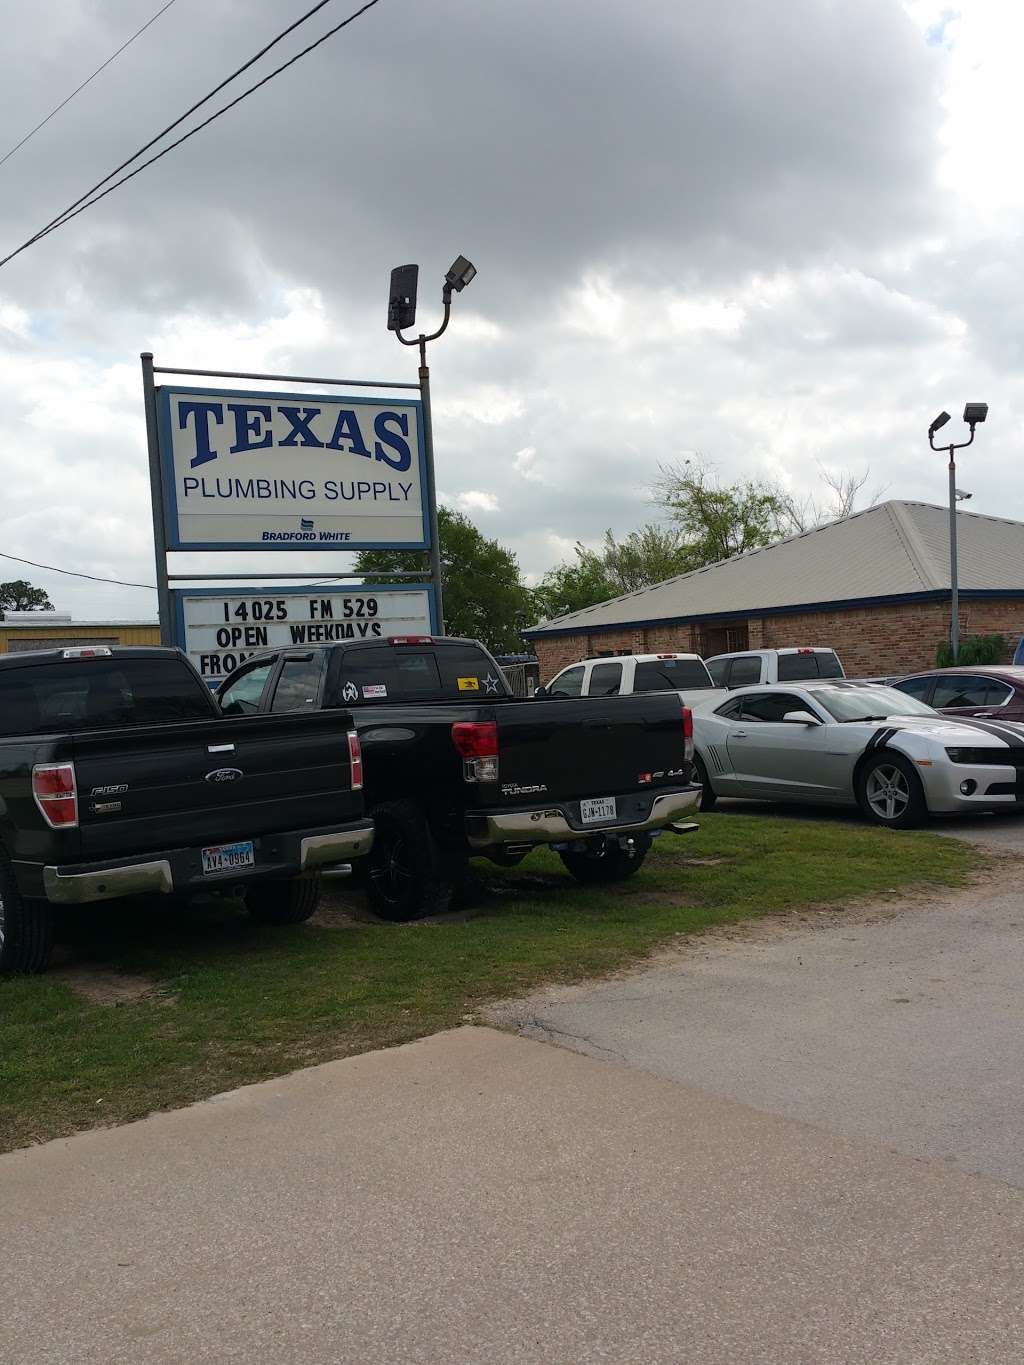 Texas Plumbing Supply - Hardware store | 14025 Farm to